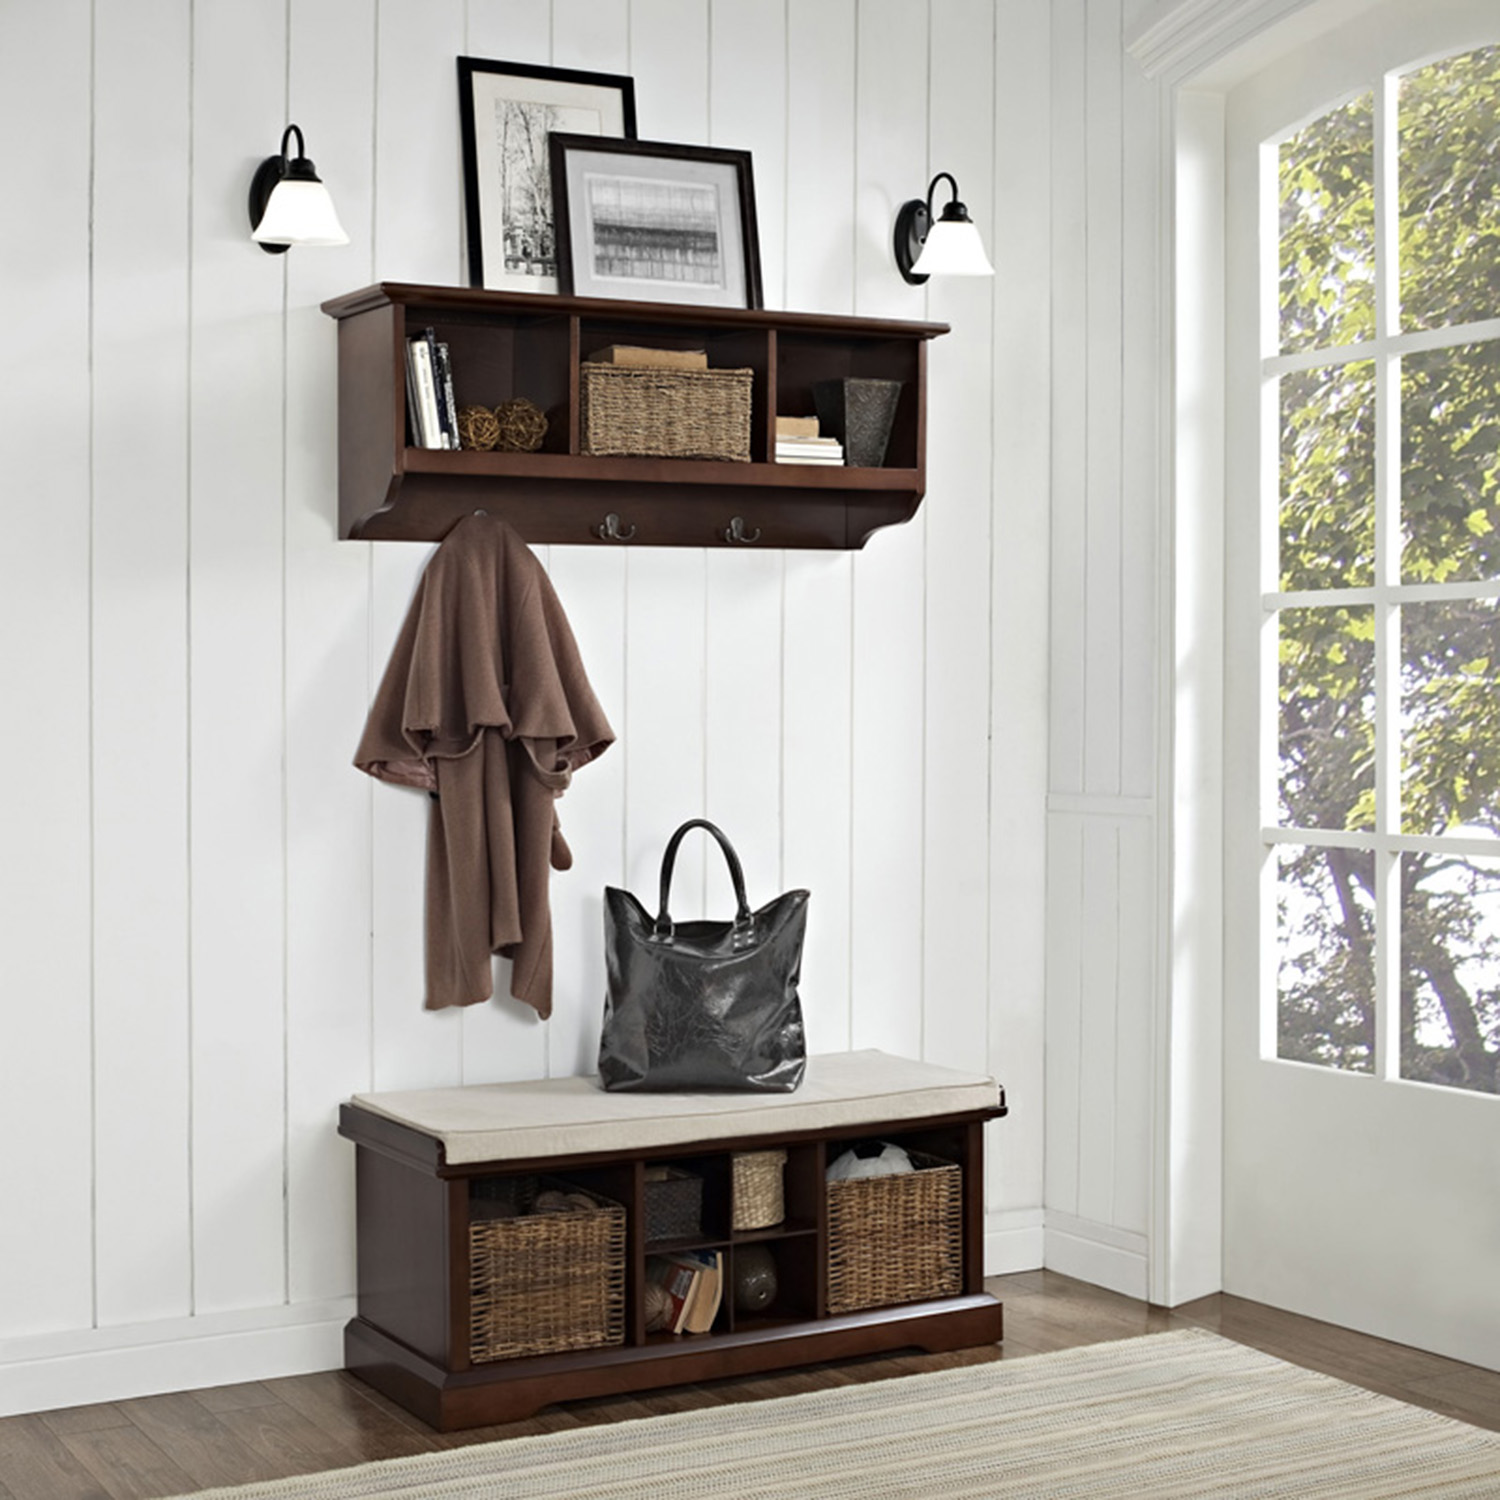 Brennan 2 Pieces Entryway Bench and Shelf Set - Mahogany - CROS-KF60001MA